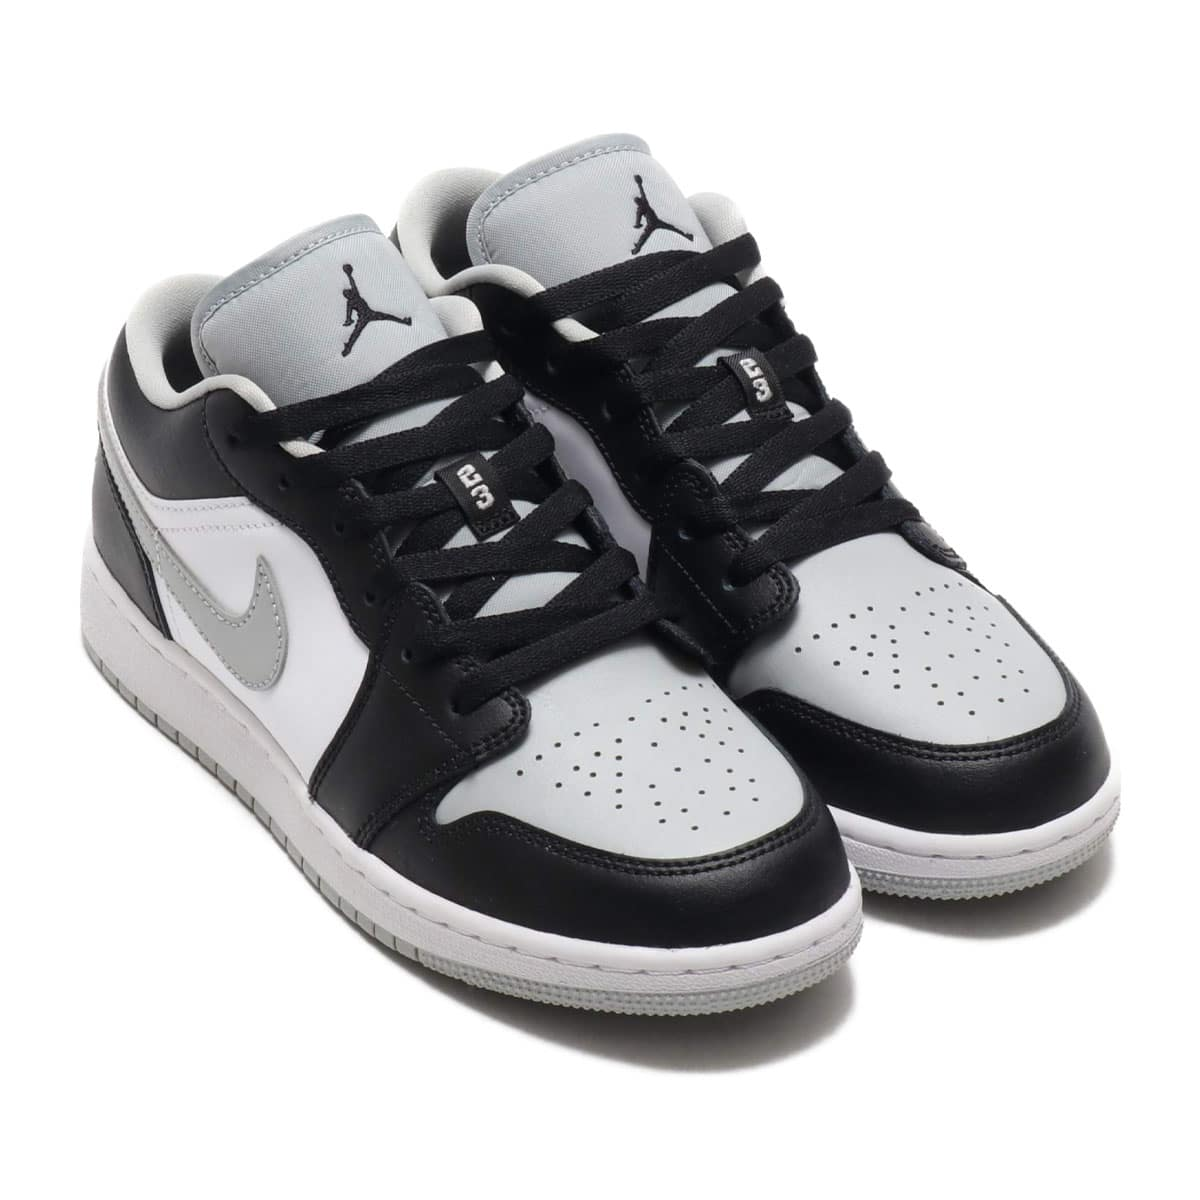 JORDAN BRAND AIR JORDAN 1 LOW (GS) BLACK/BLACK-LT SMOKE GREY-WHITE 20SU-S_photo_large